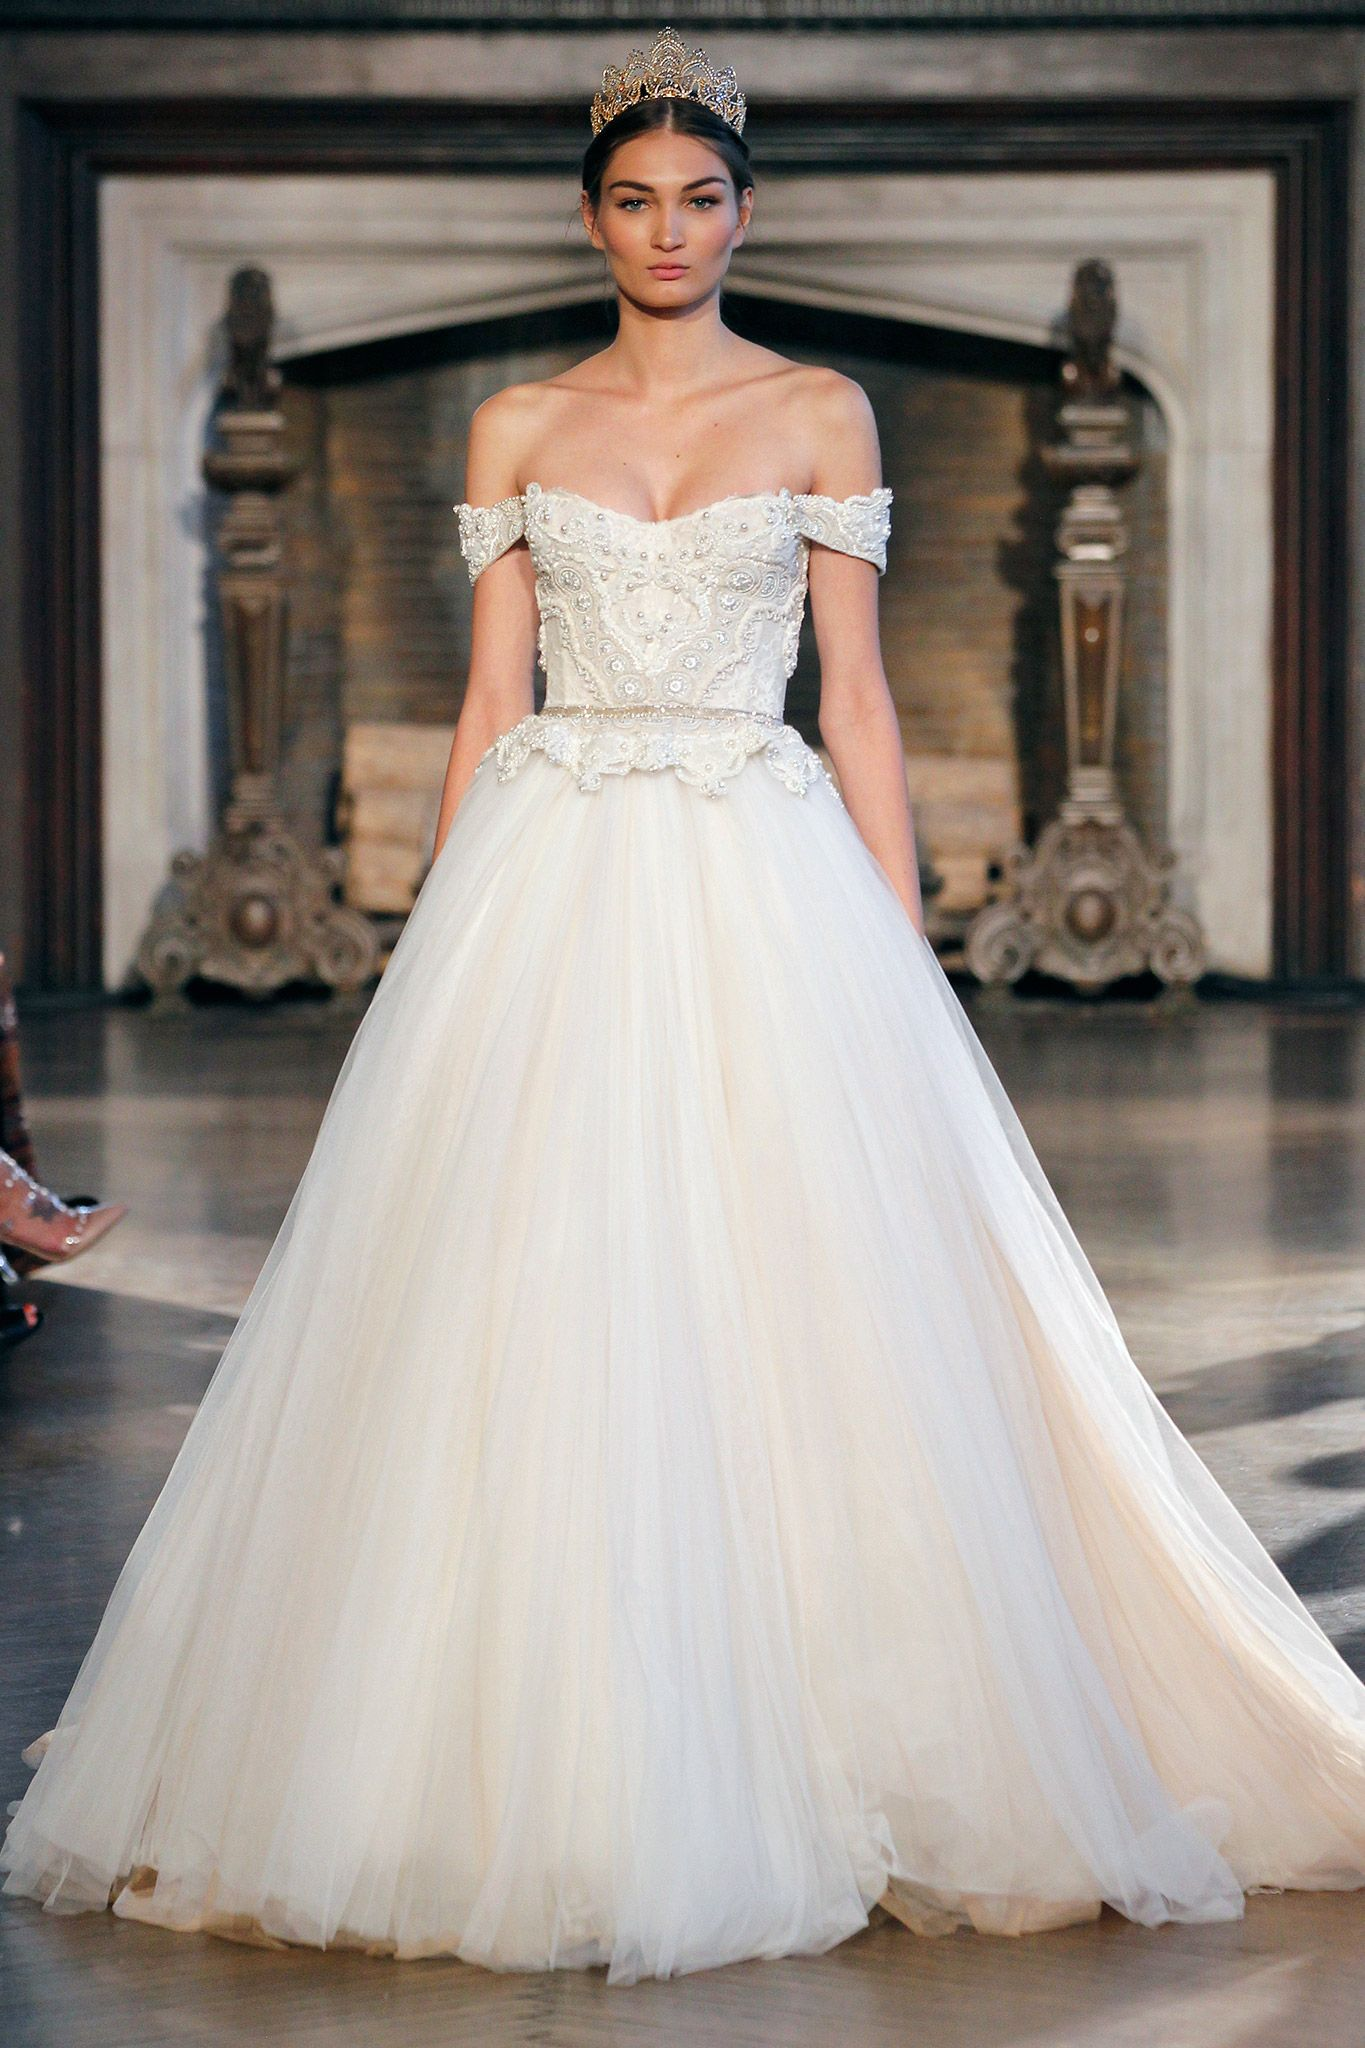 Fancy The Biggest Gown Trends from the Bridal Runway Shows